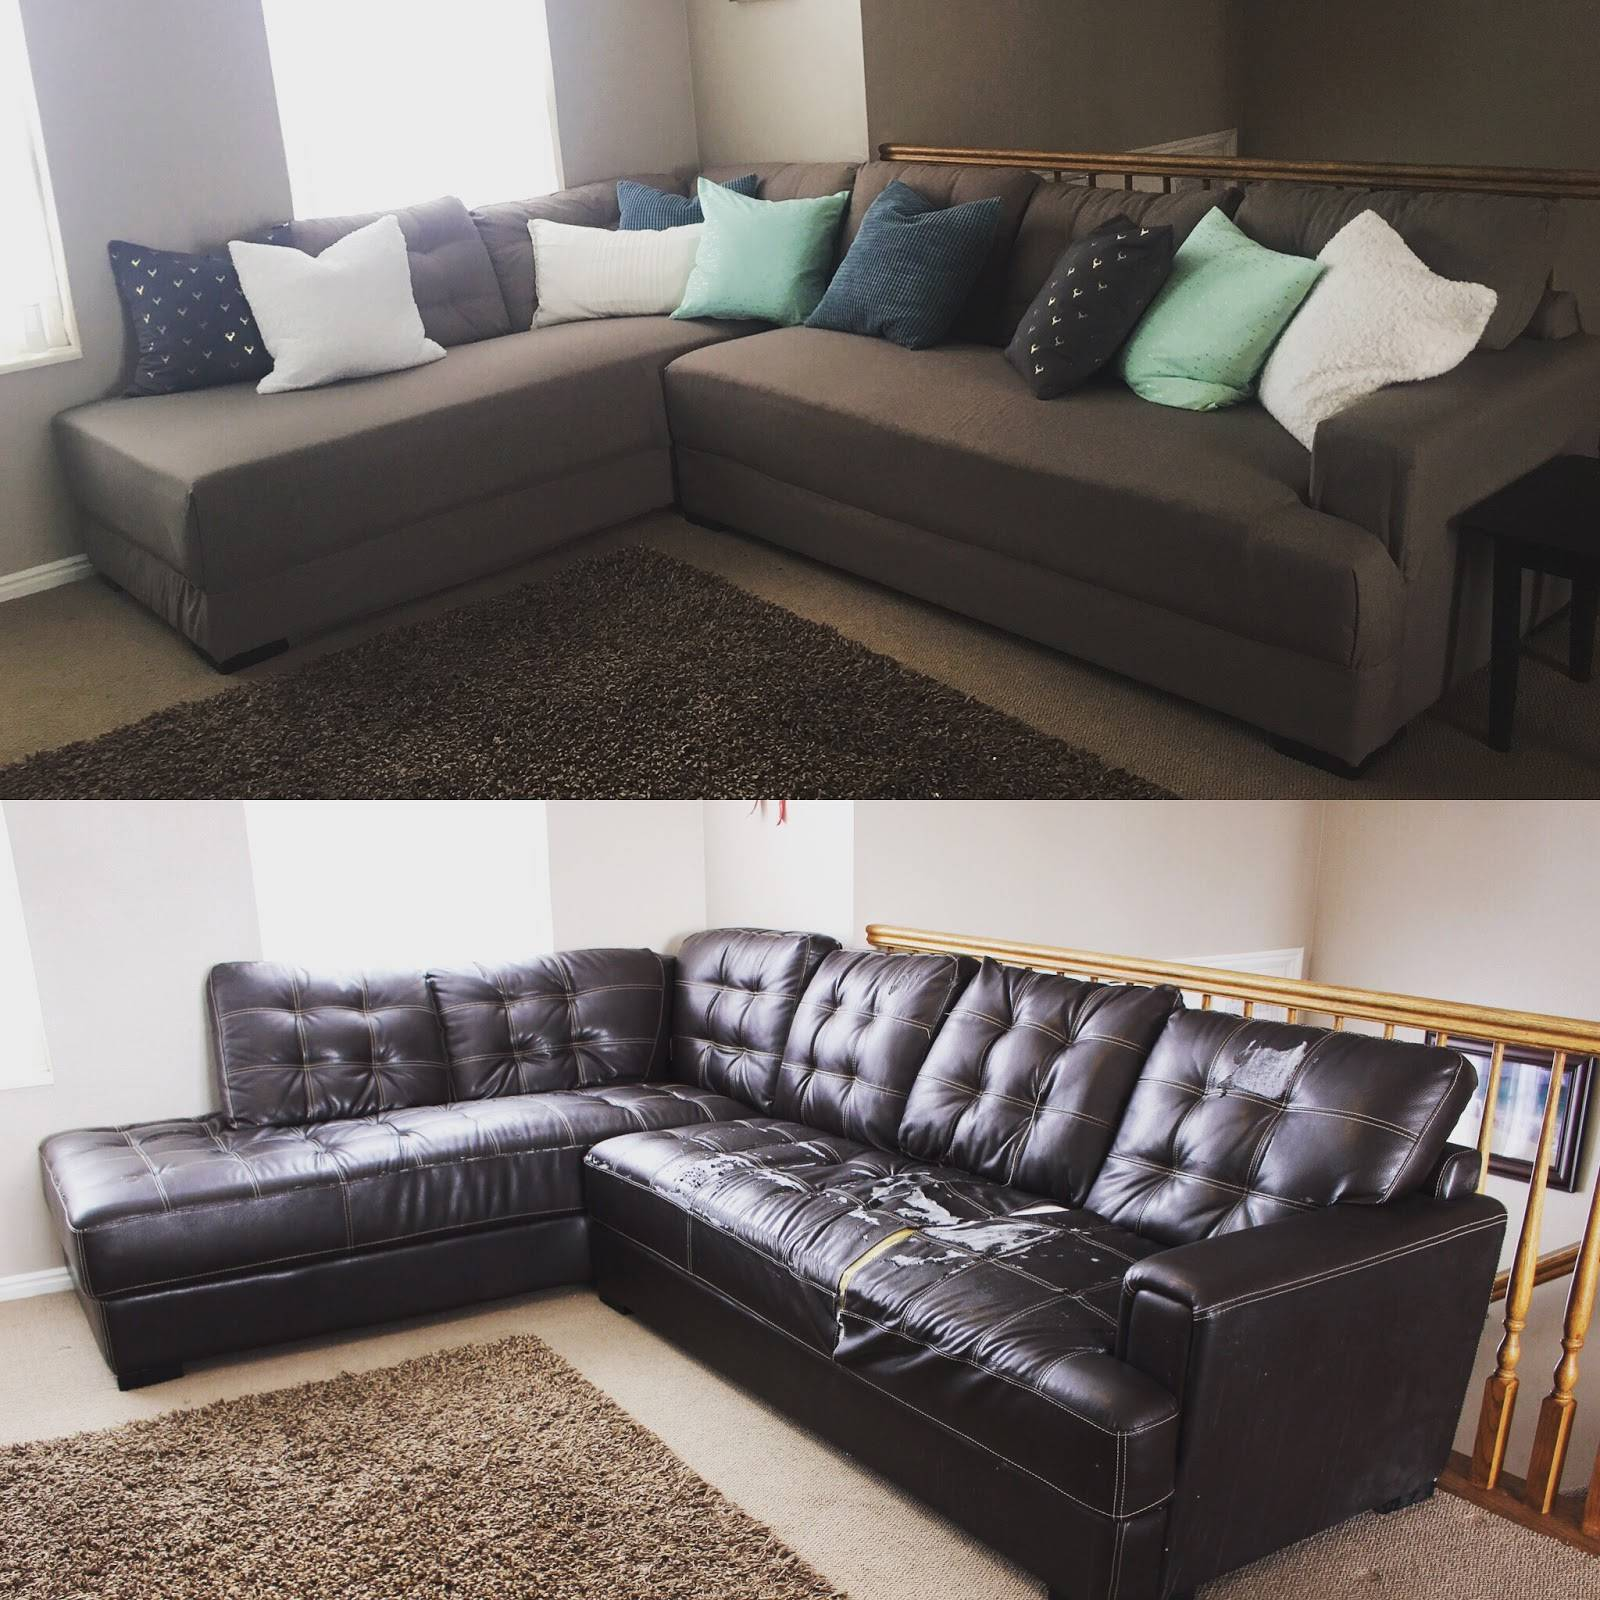 Reupholster Sectional Sofa Cover